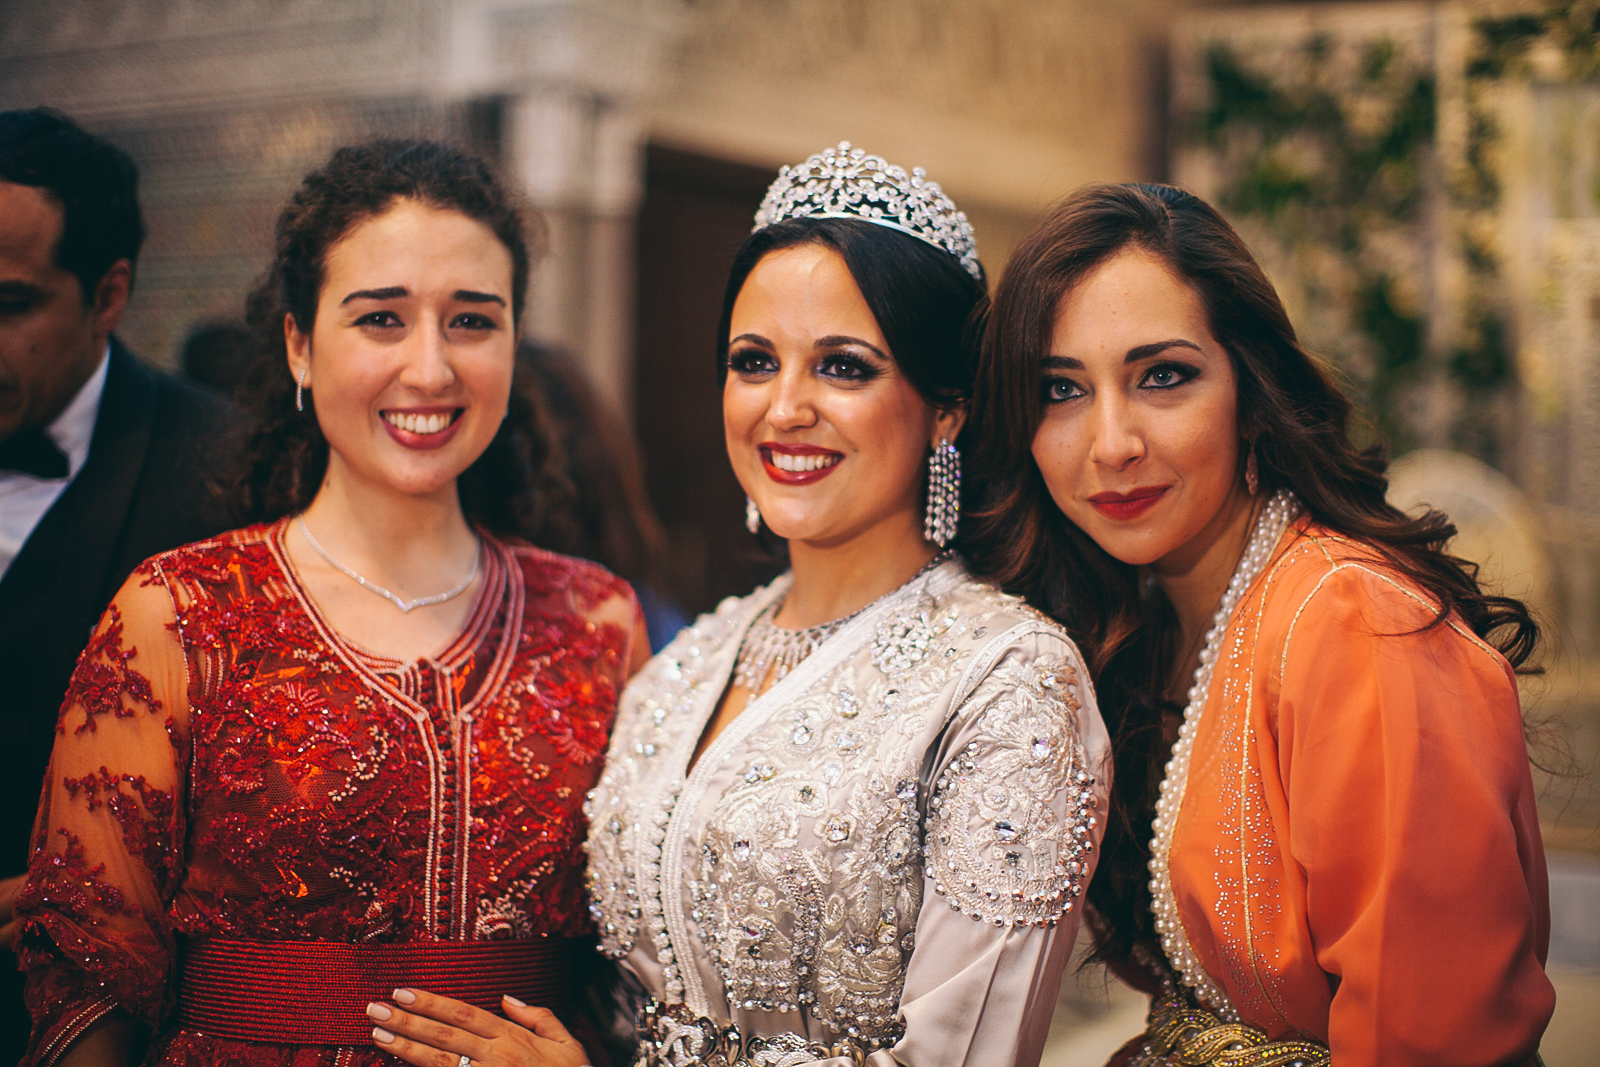 traditional_moroccan_wedding_photographry_casablanca_morocco_houda_vivek_ebony_siovhan_bokeh_photography_102.jpg